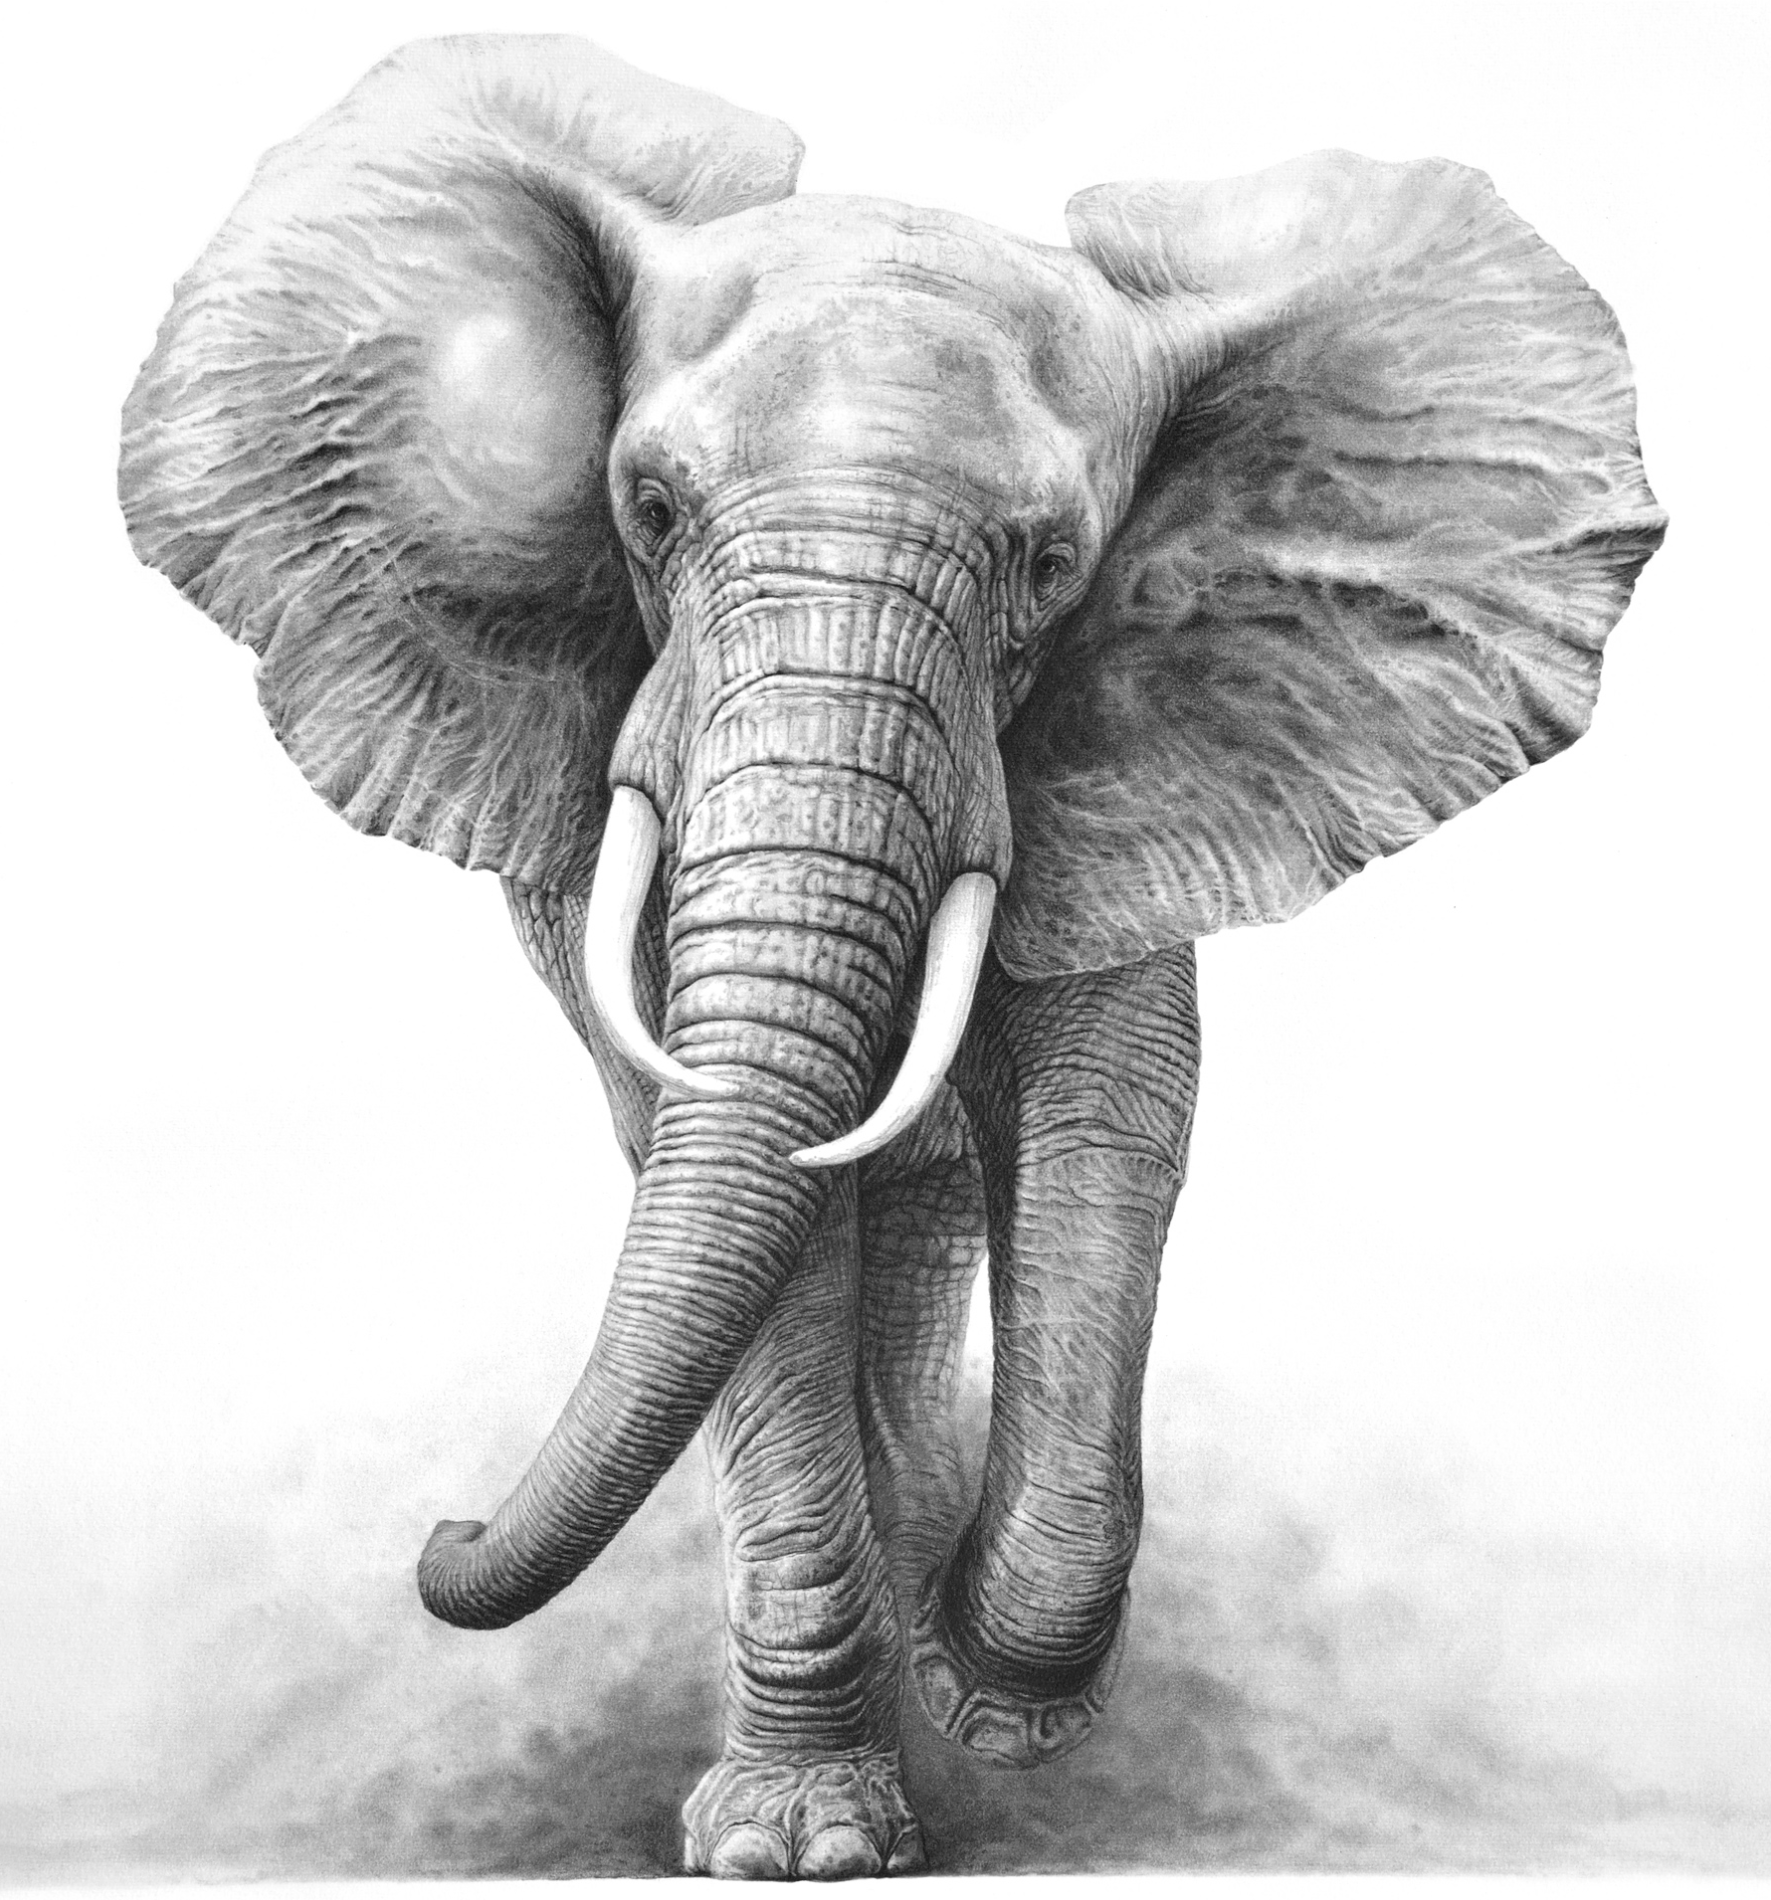 Elephant Pencil Drawing Tattoo Design | Elephant Love ️ ...